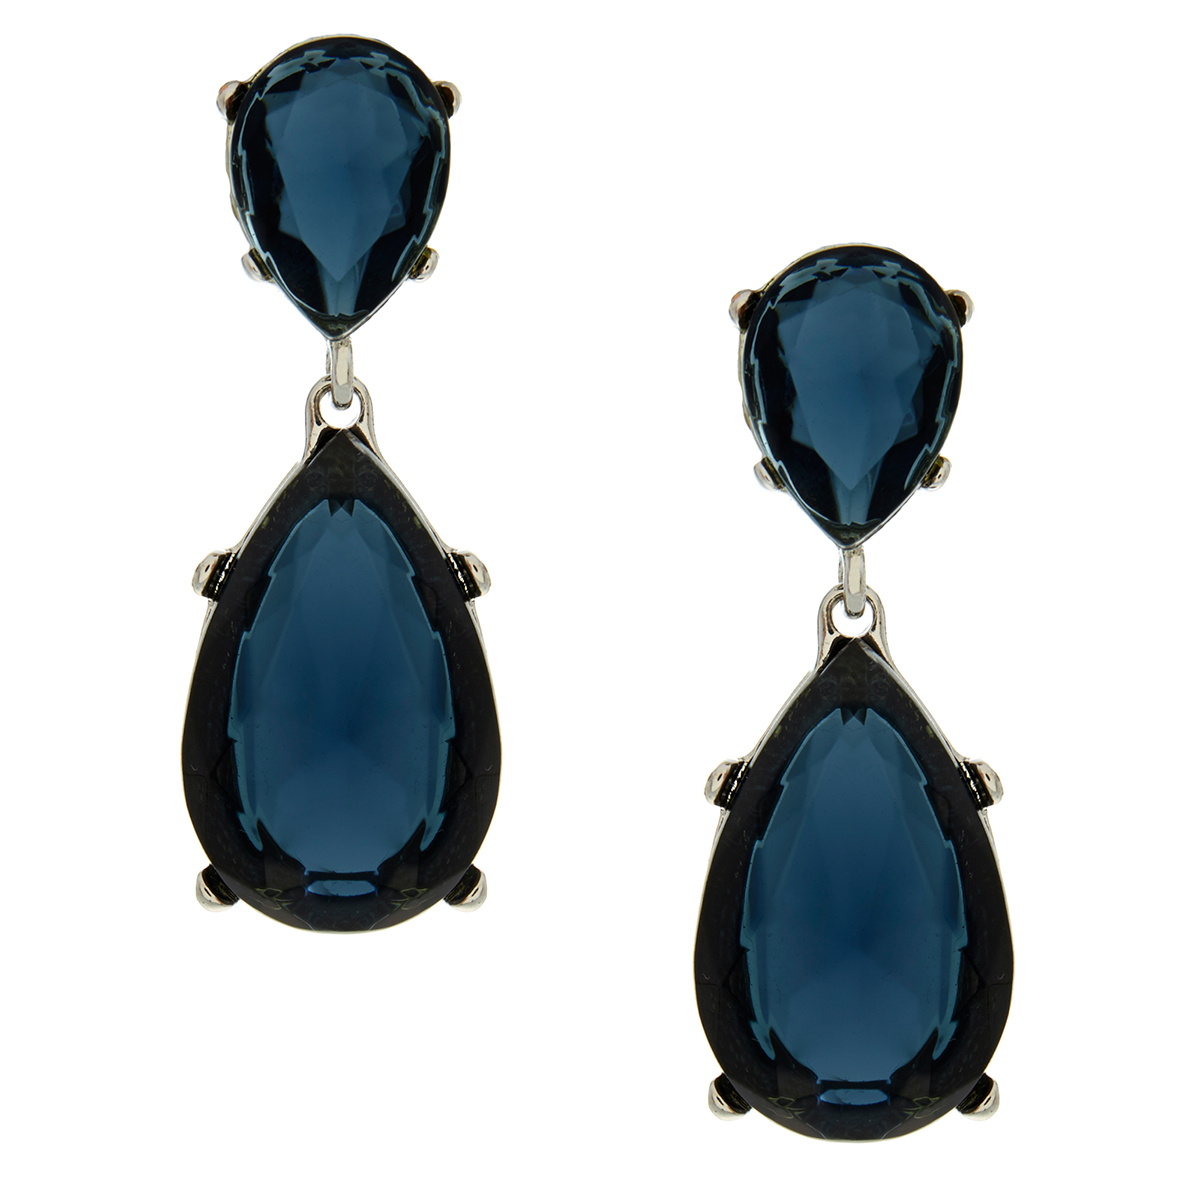 kenneth_jay_lane_rhodium_sapphire_drop_pierced_earrings_017826.jpg